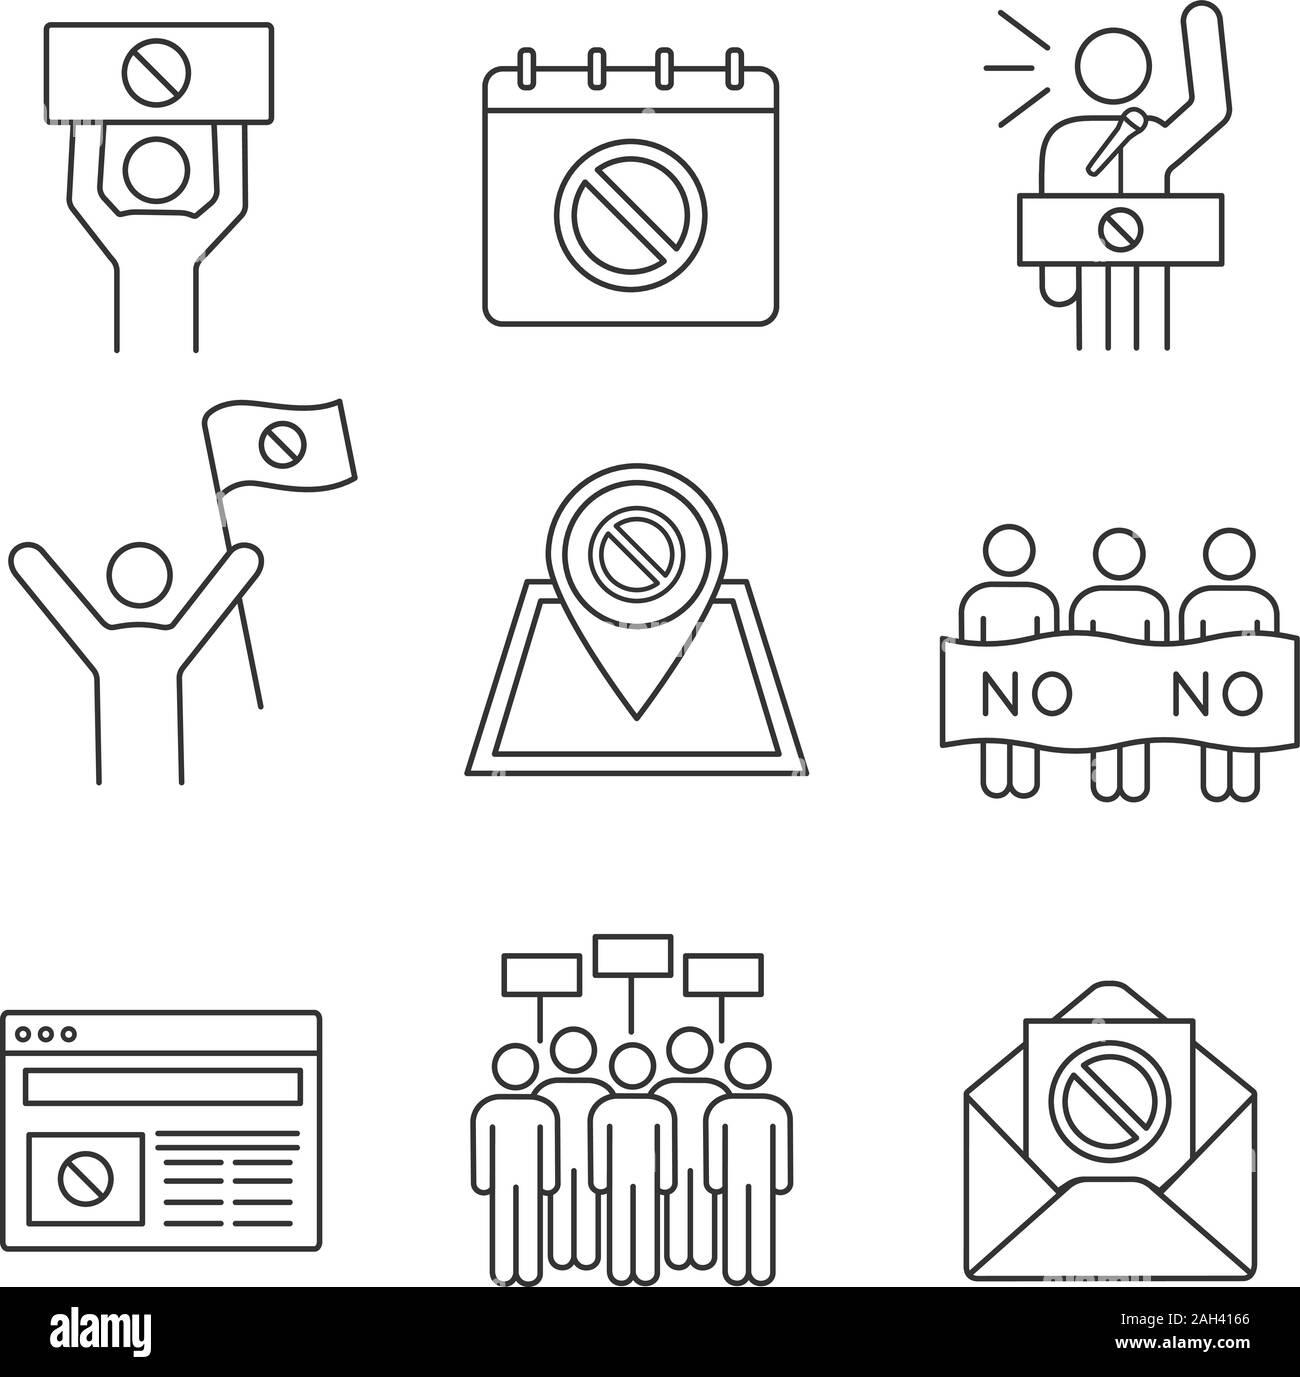 Protest action linear icons set. Protest banner, date, protester, internet news, location, email, picket, strike, speech. Thin line symbols. Isolated Stock Vector